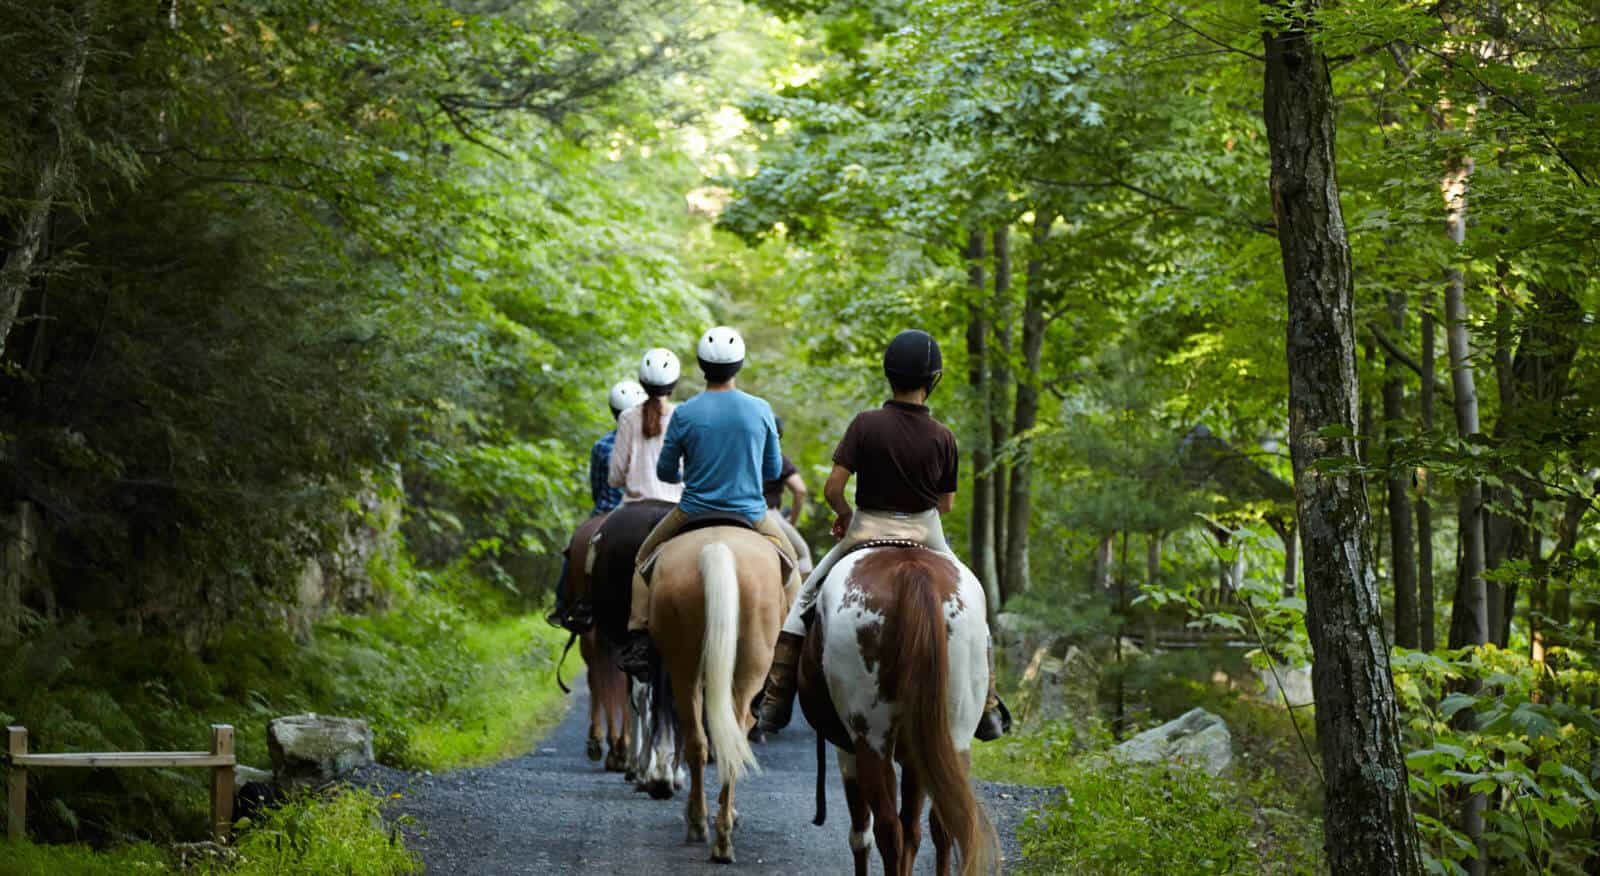 Horseback Riding - Outdoor Activities - Upstate New York - Mohonk